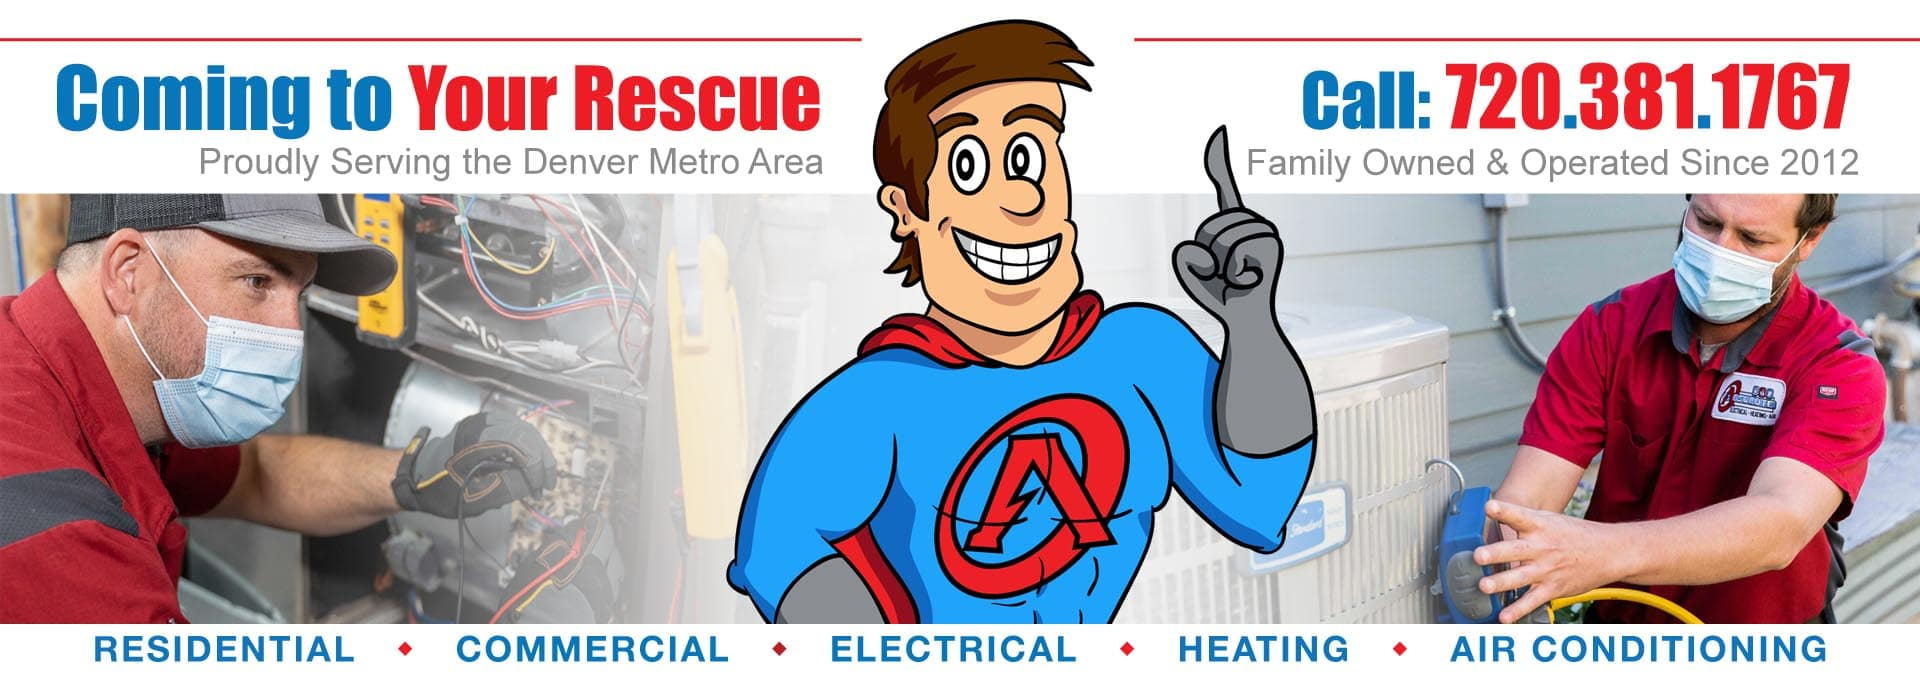 electrical and hvac services banner